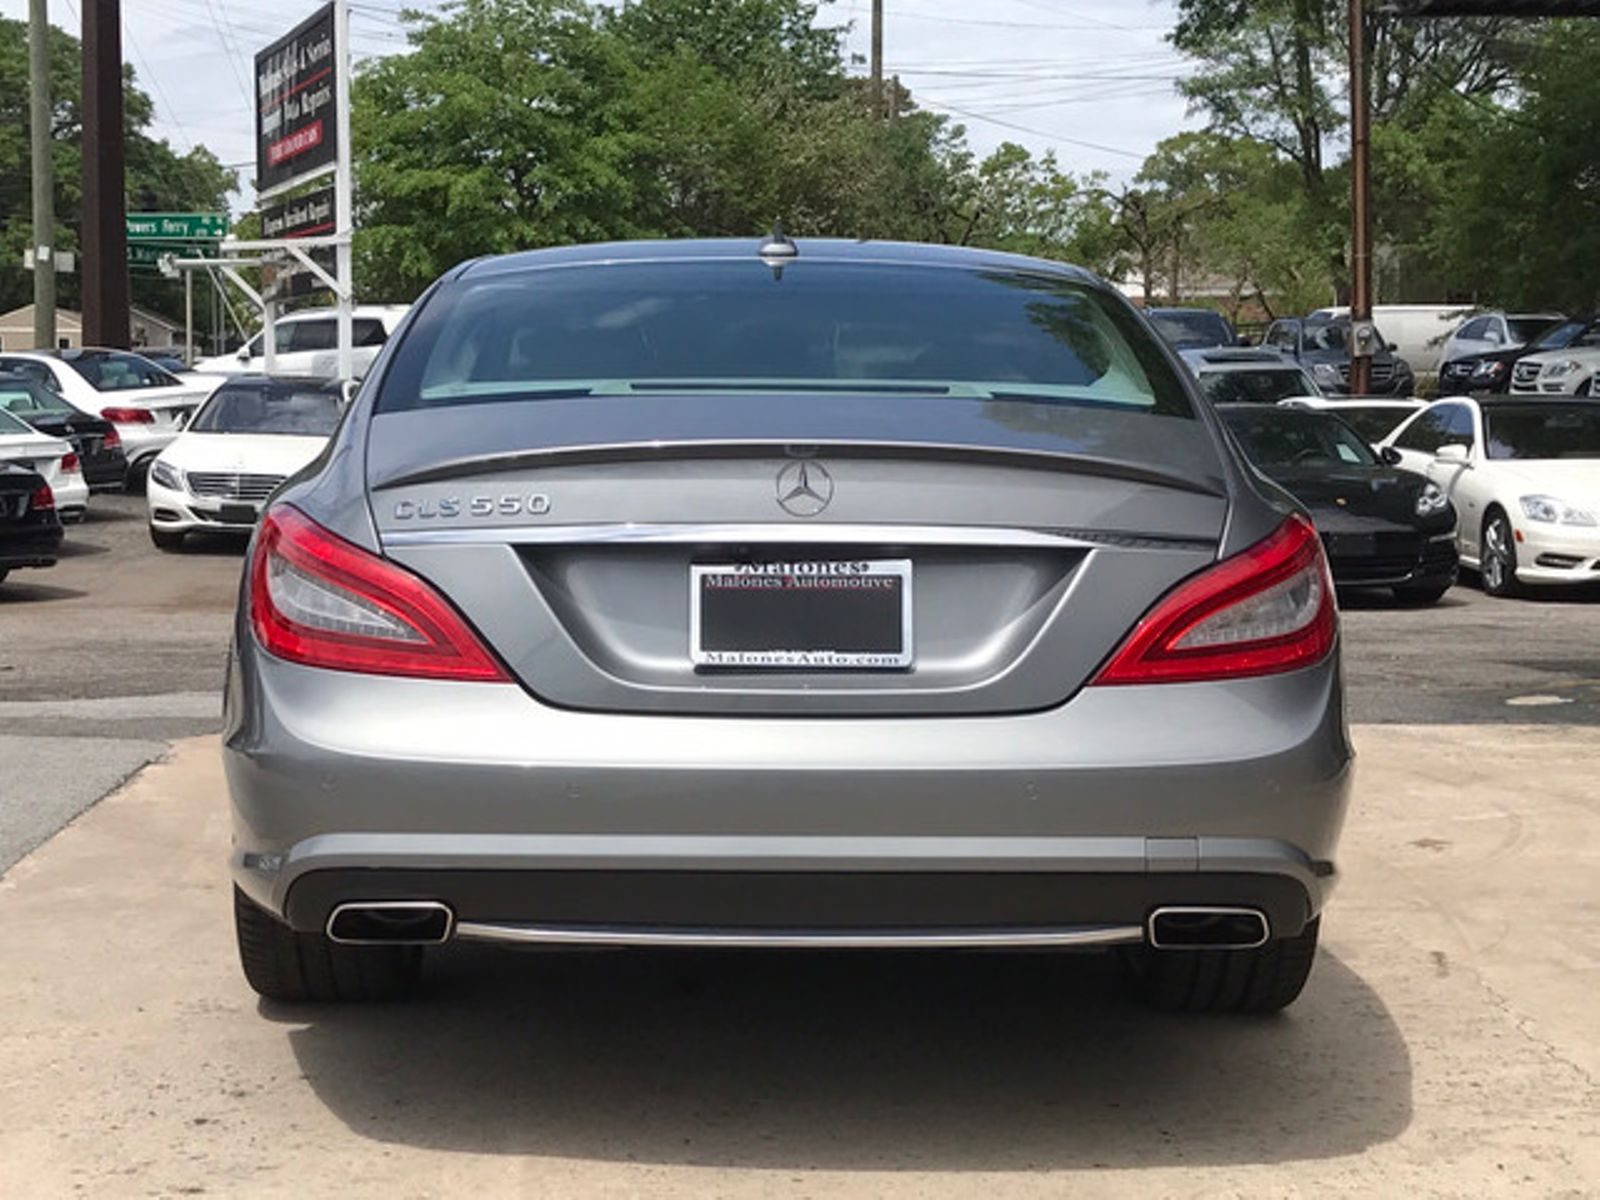 2014 mercedes benz cls 550 amg keyless go blind spot for Mercedes benz 550 cls